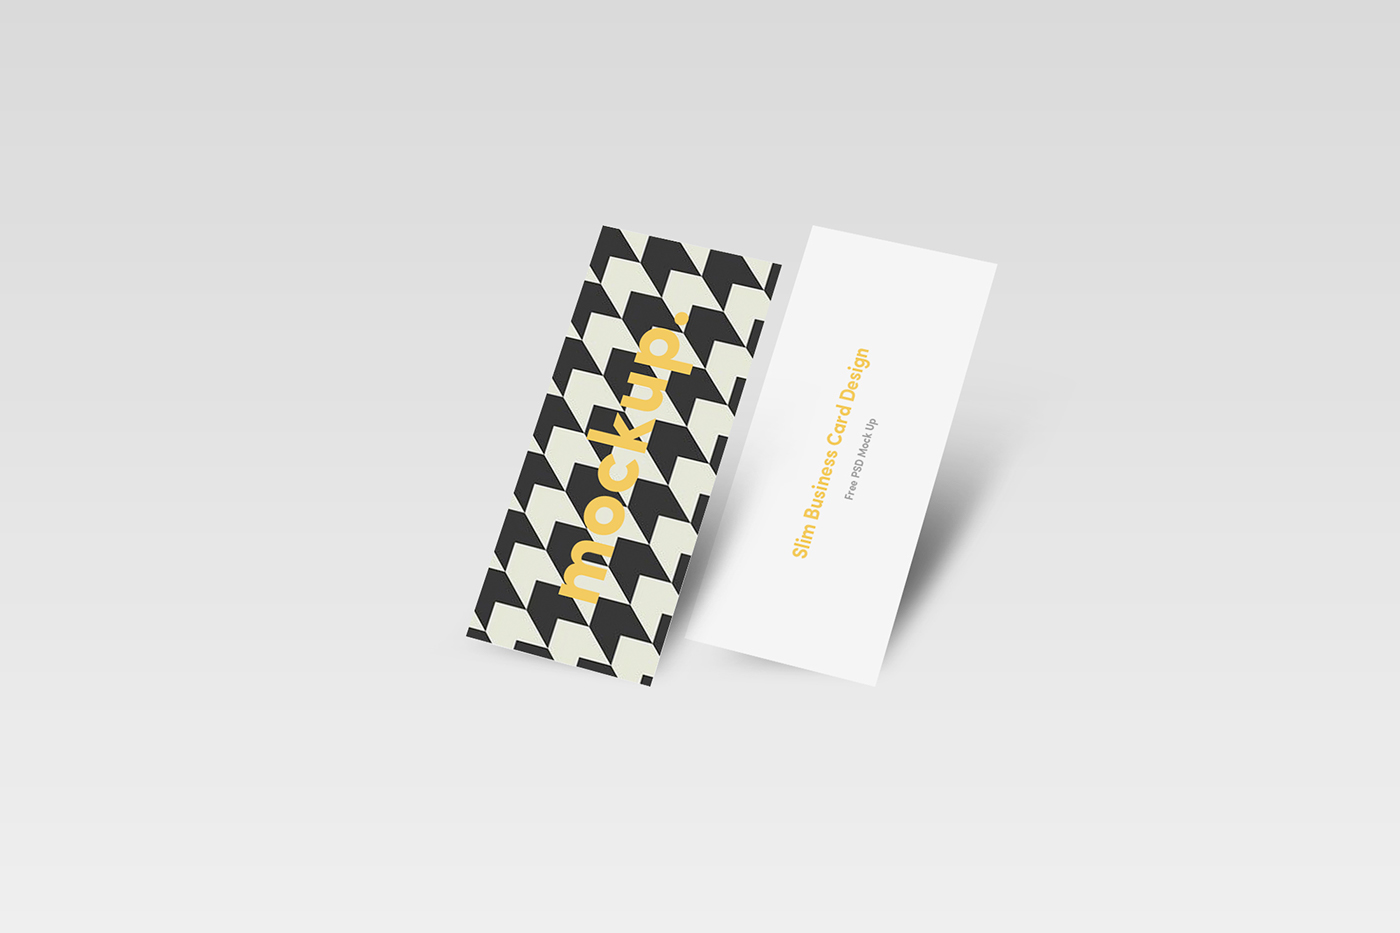 5 Free Business Card Mock-Ups | Free and Premium Design